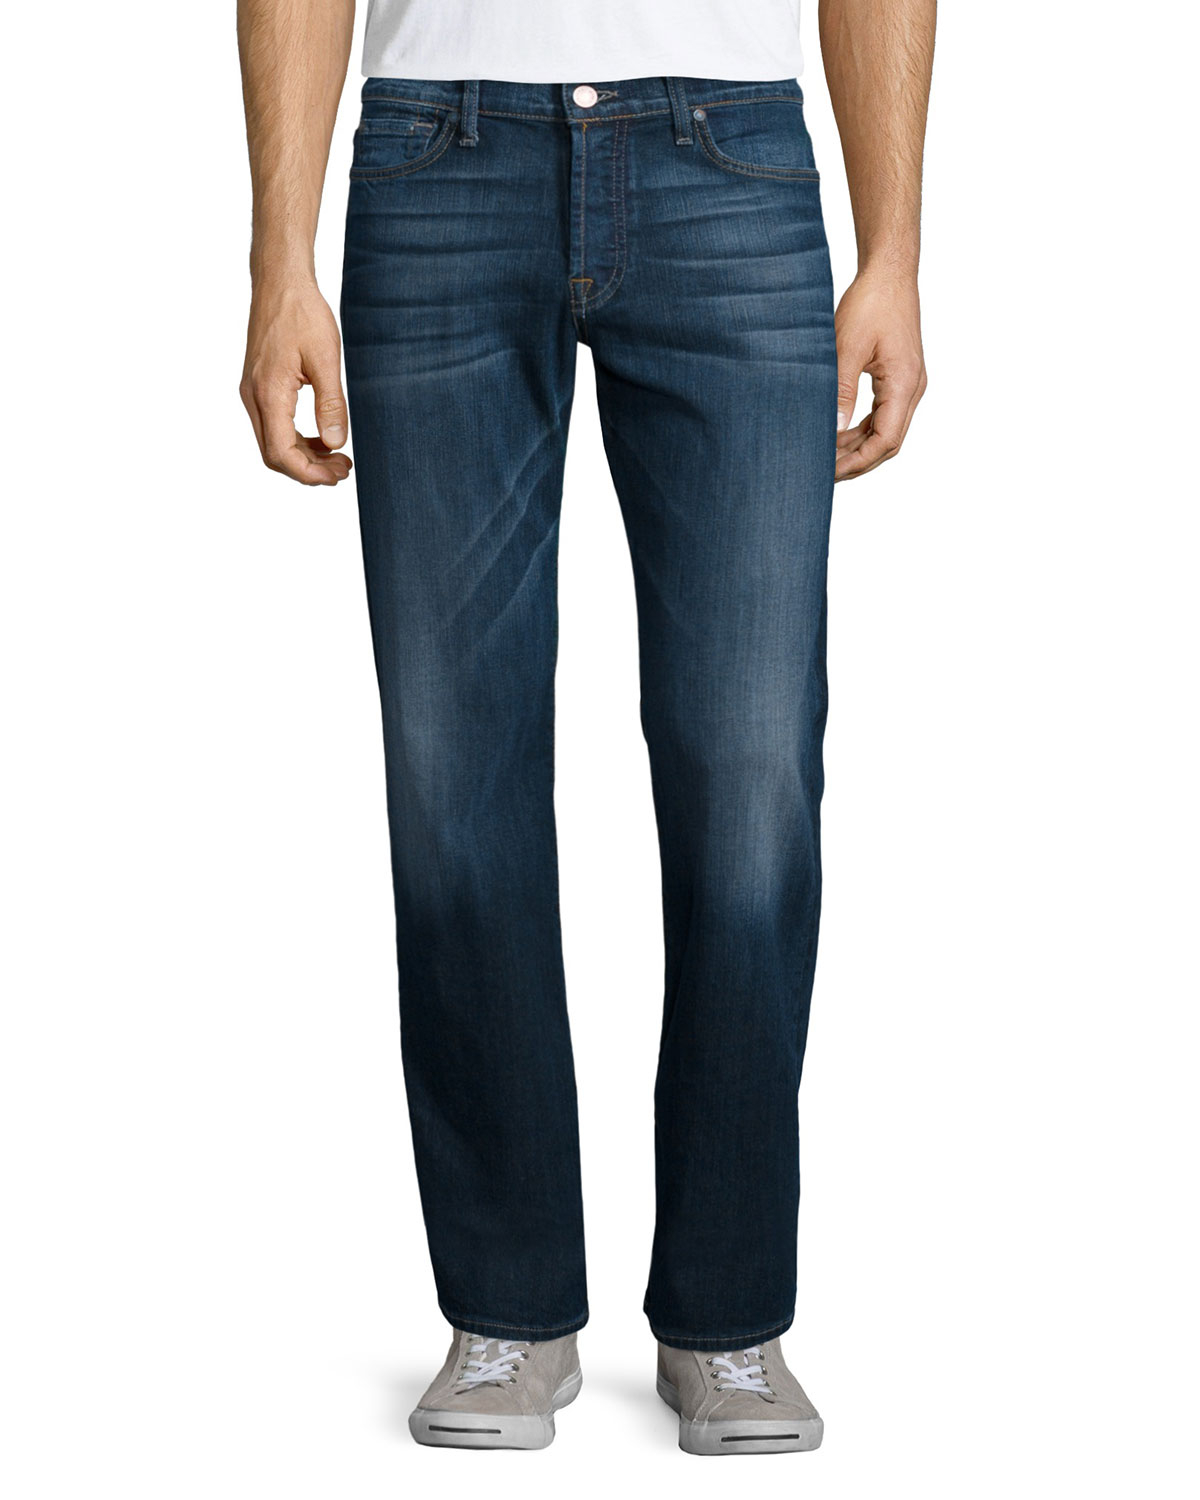 lyst 7 for all mankind luxe performance standard blue illusion jeans in blue for men. Black Bedroom Furniture Sets. Home Design Ideas